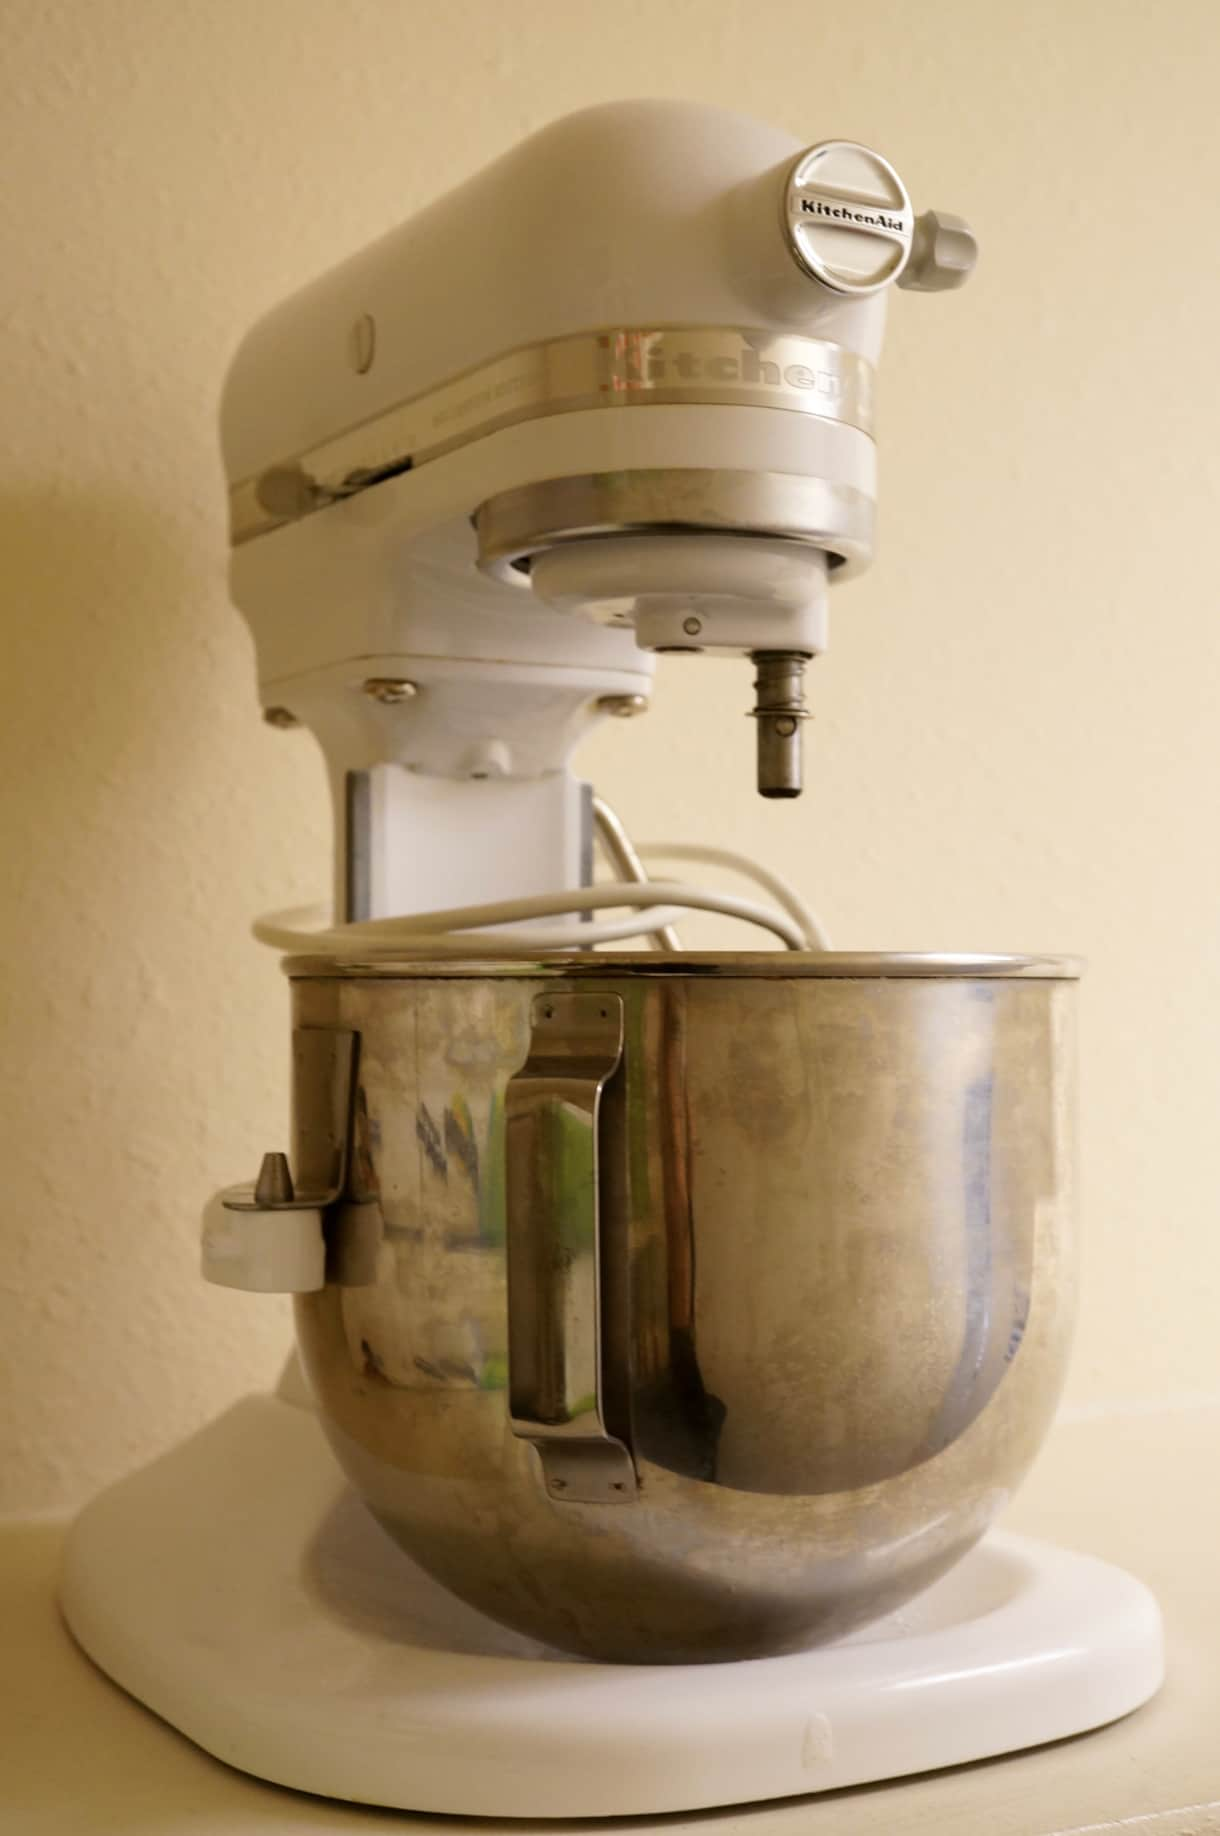 Kitchen-Aid stand up mixer